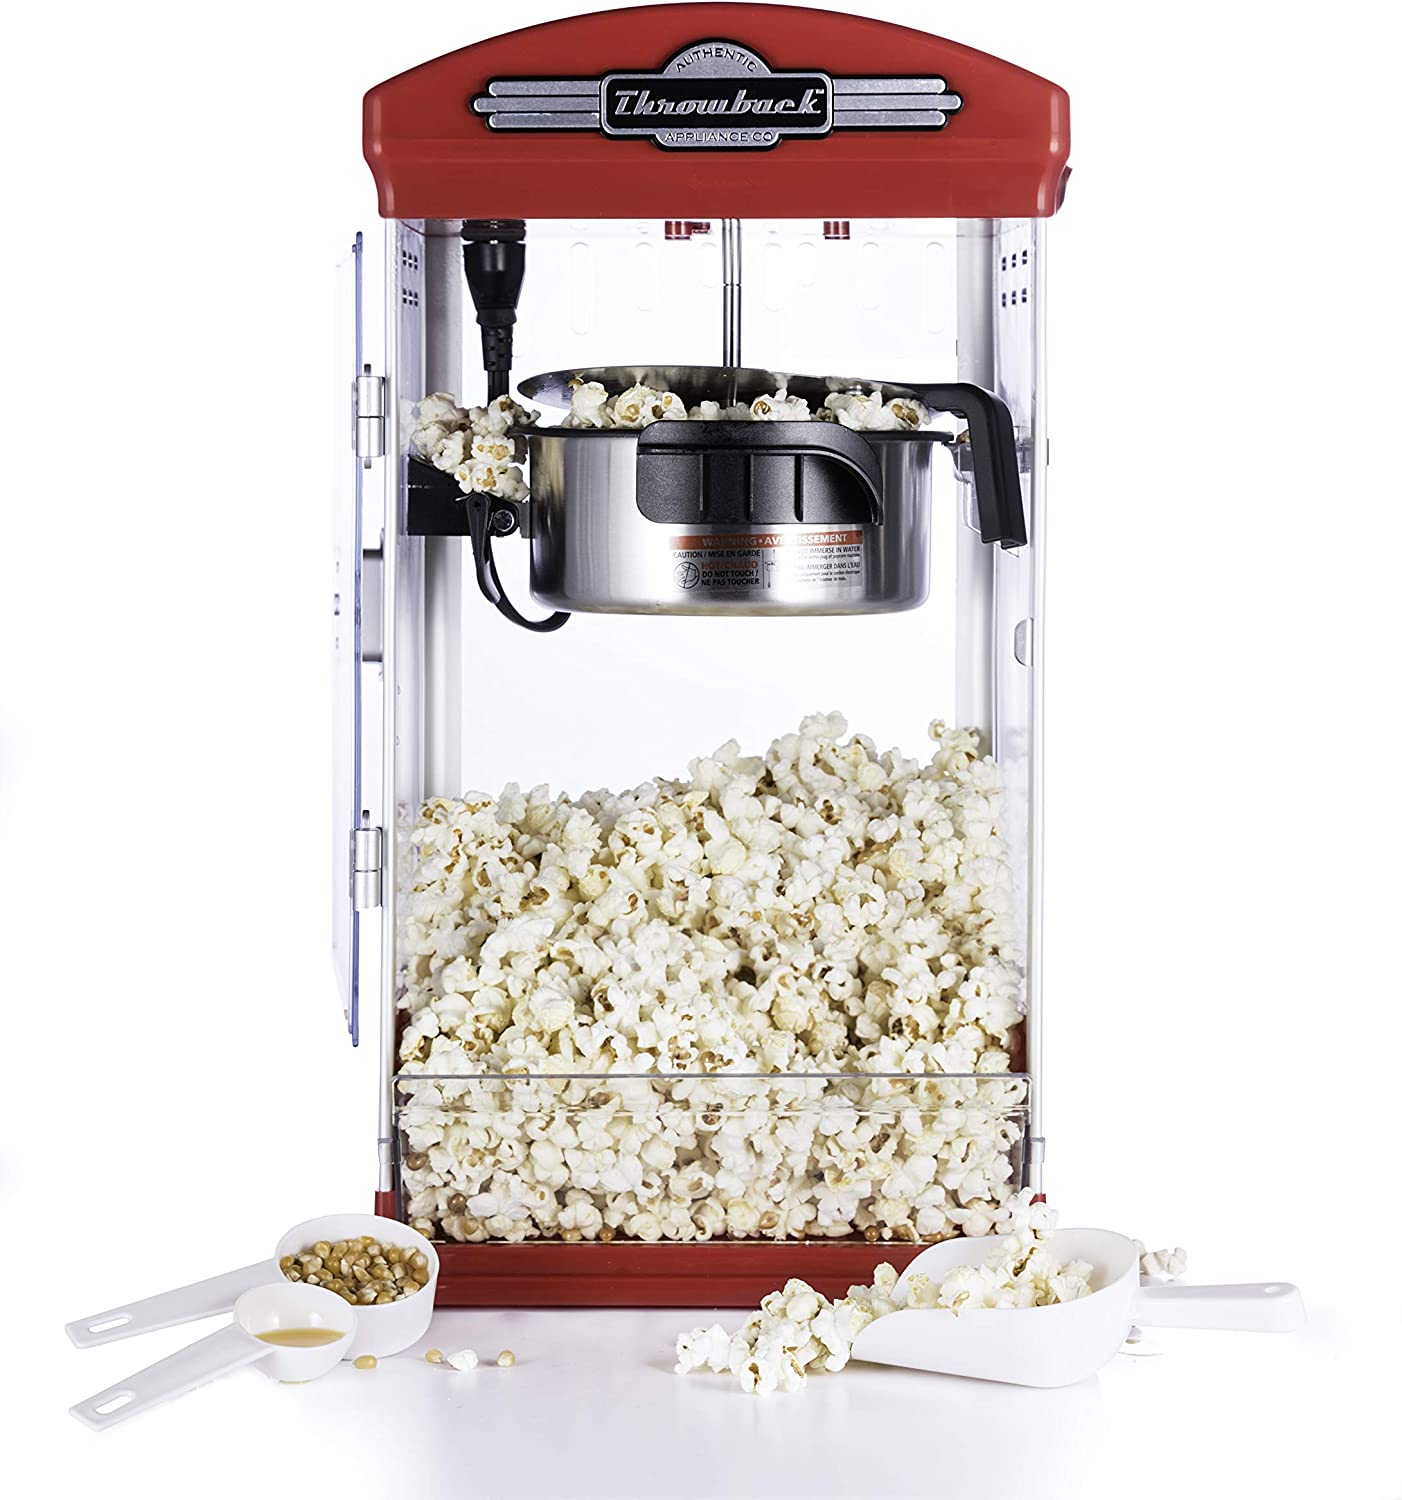 Amazon Com Throwback 60030 Classic Vintage Design Movie Theater Fresh Kettle Style Popcorn Maker Machine With Popcorn Scoop Measuring Cup And Oil Spoon Red Kitchen Dining